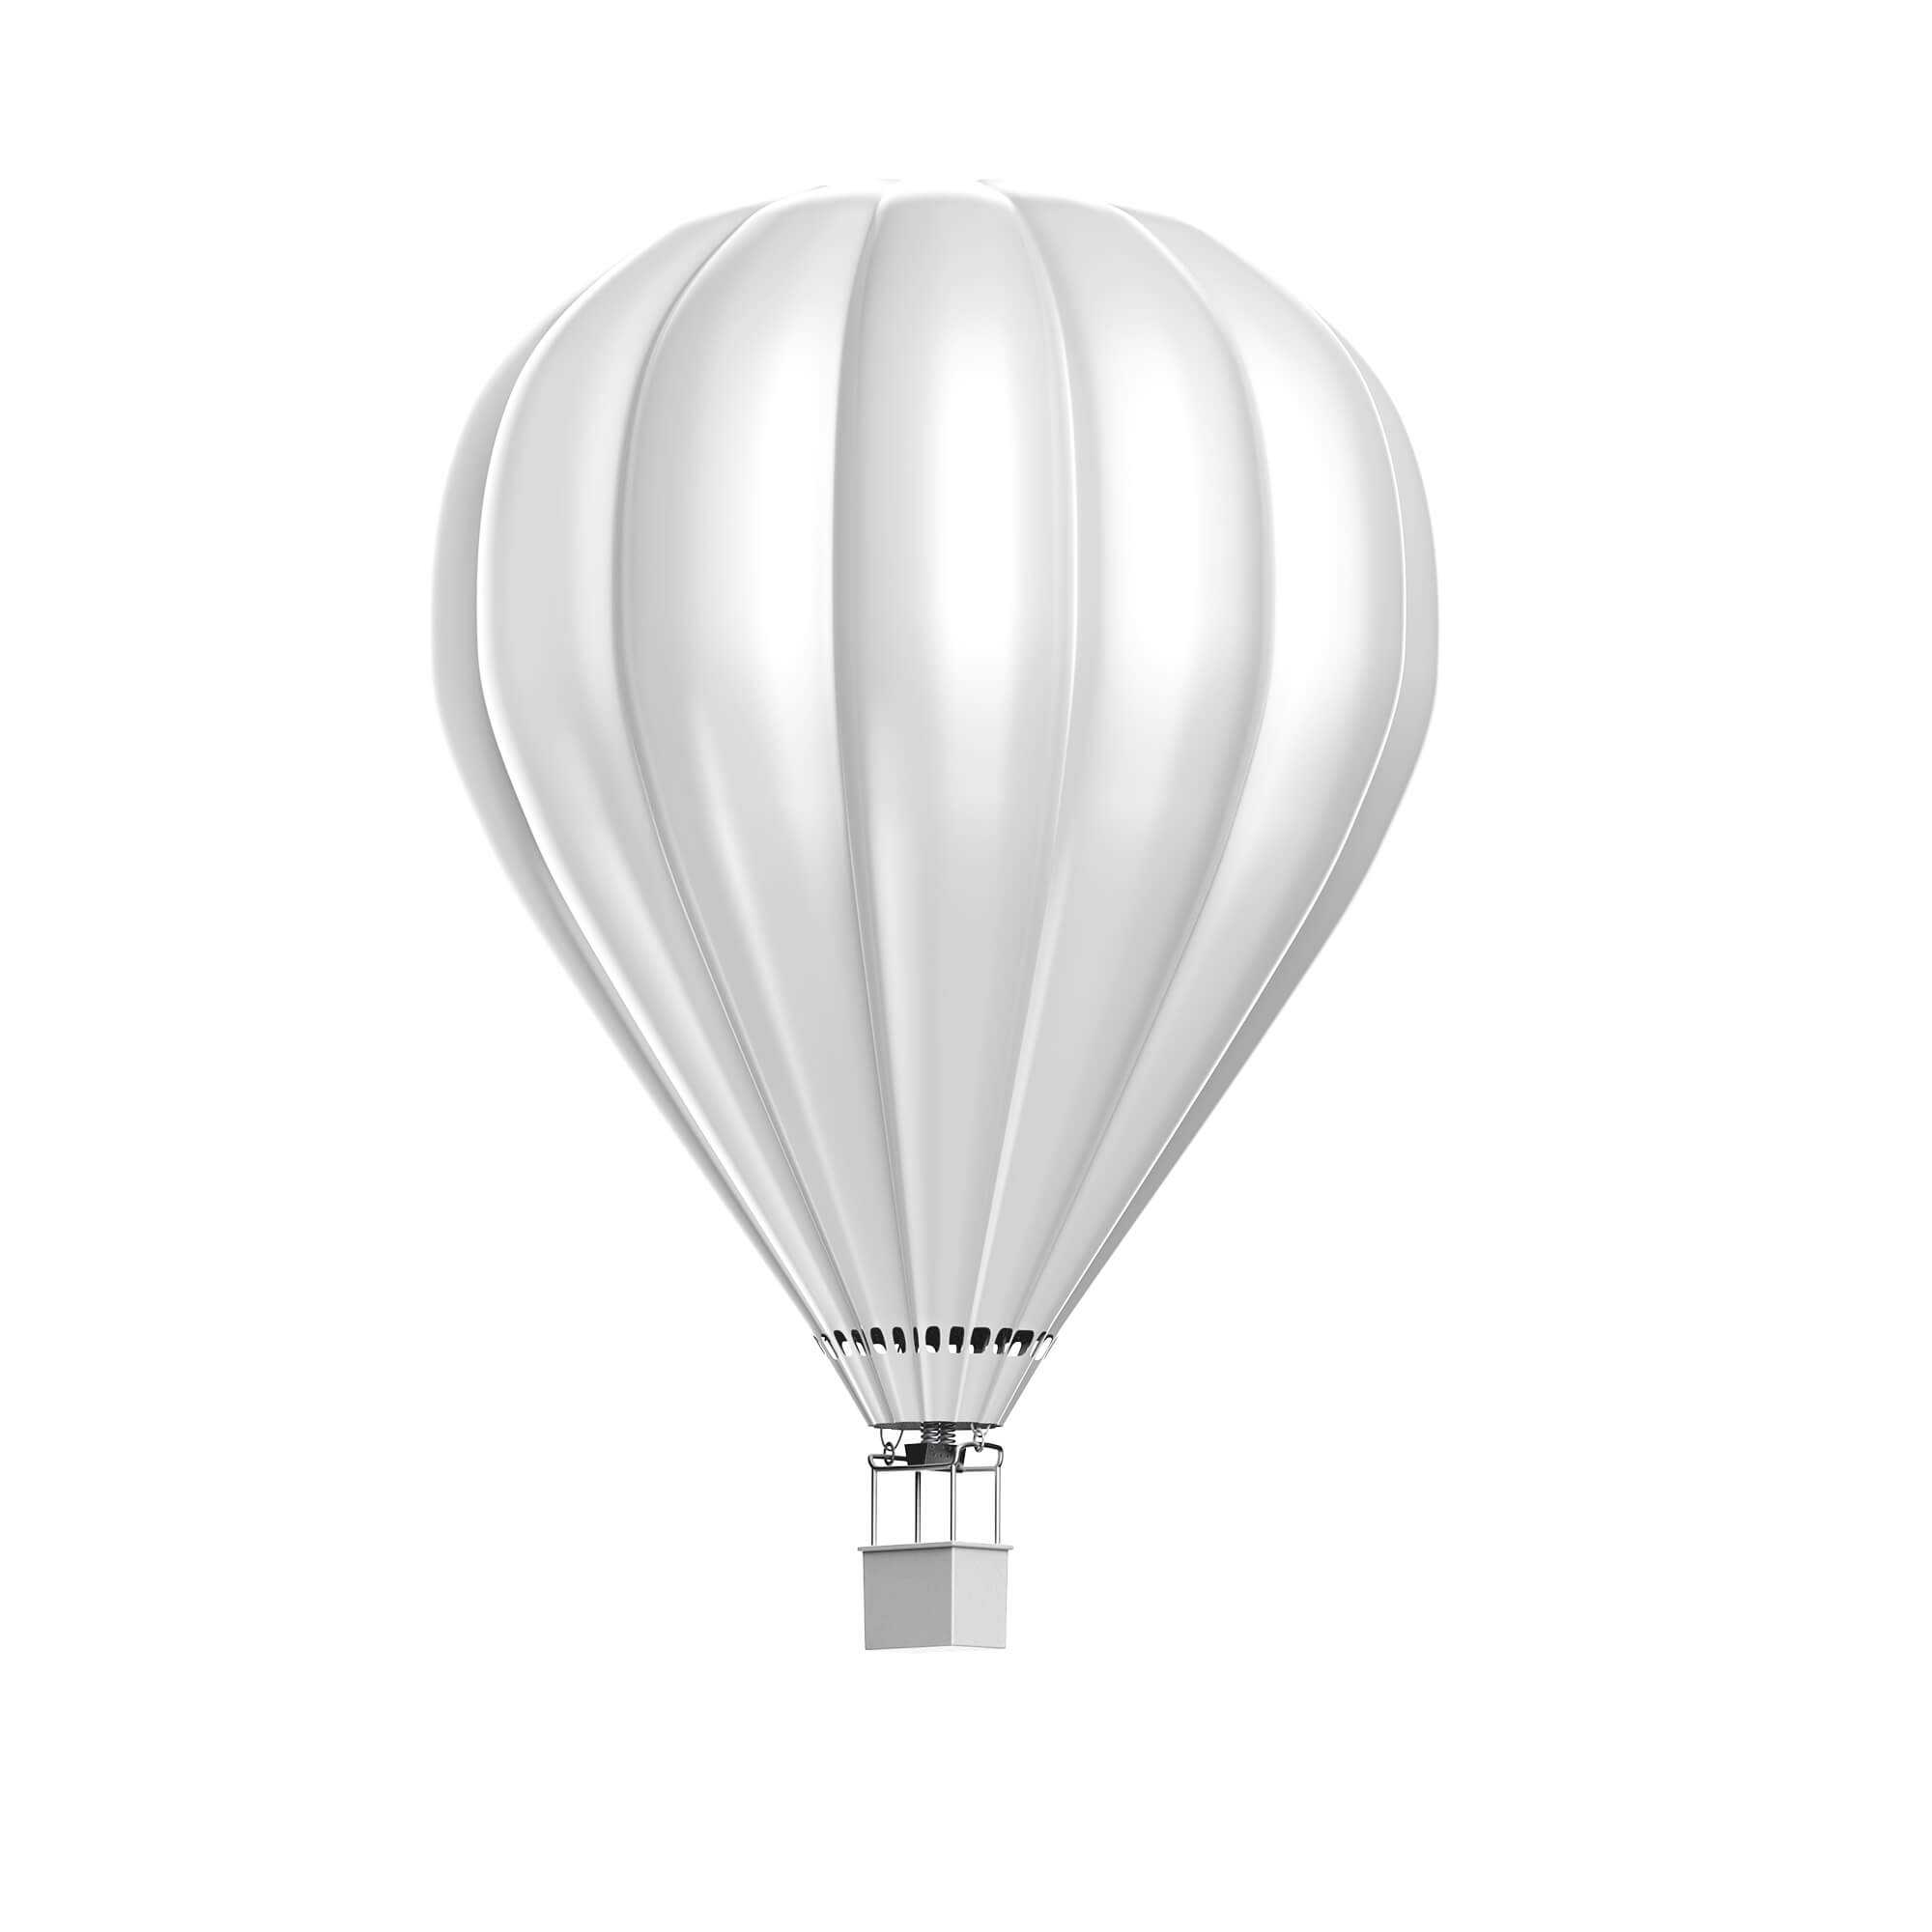 Blank Free Hot Air Balloon Mockup PSD Template